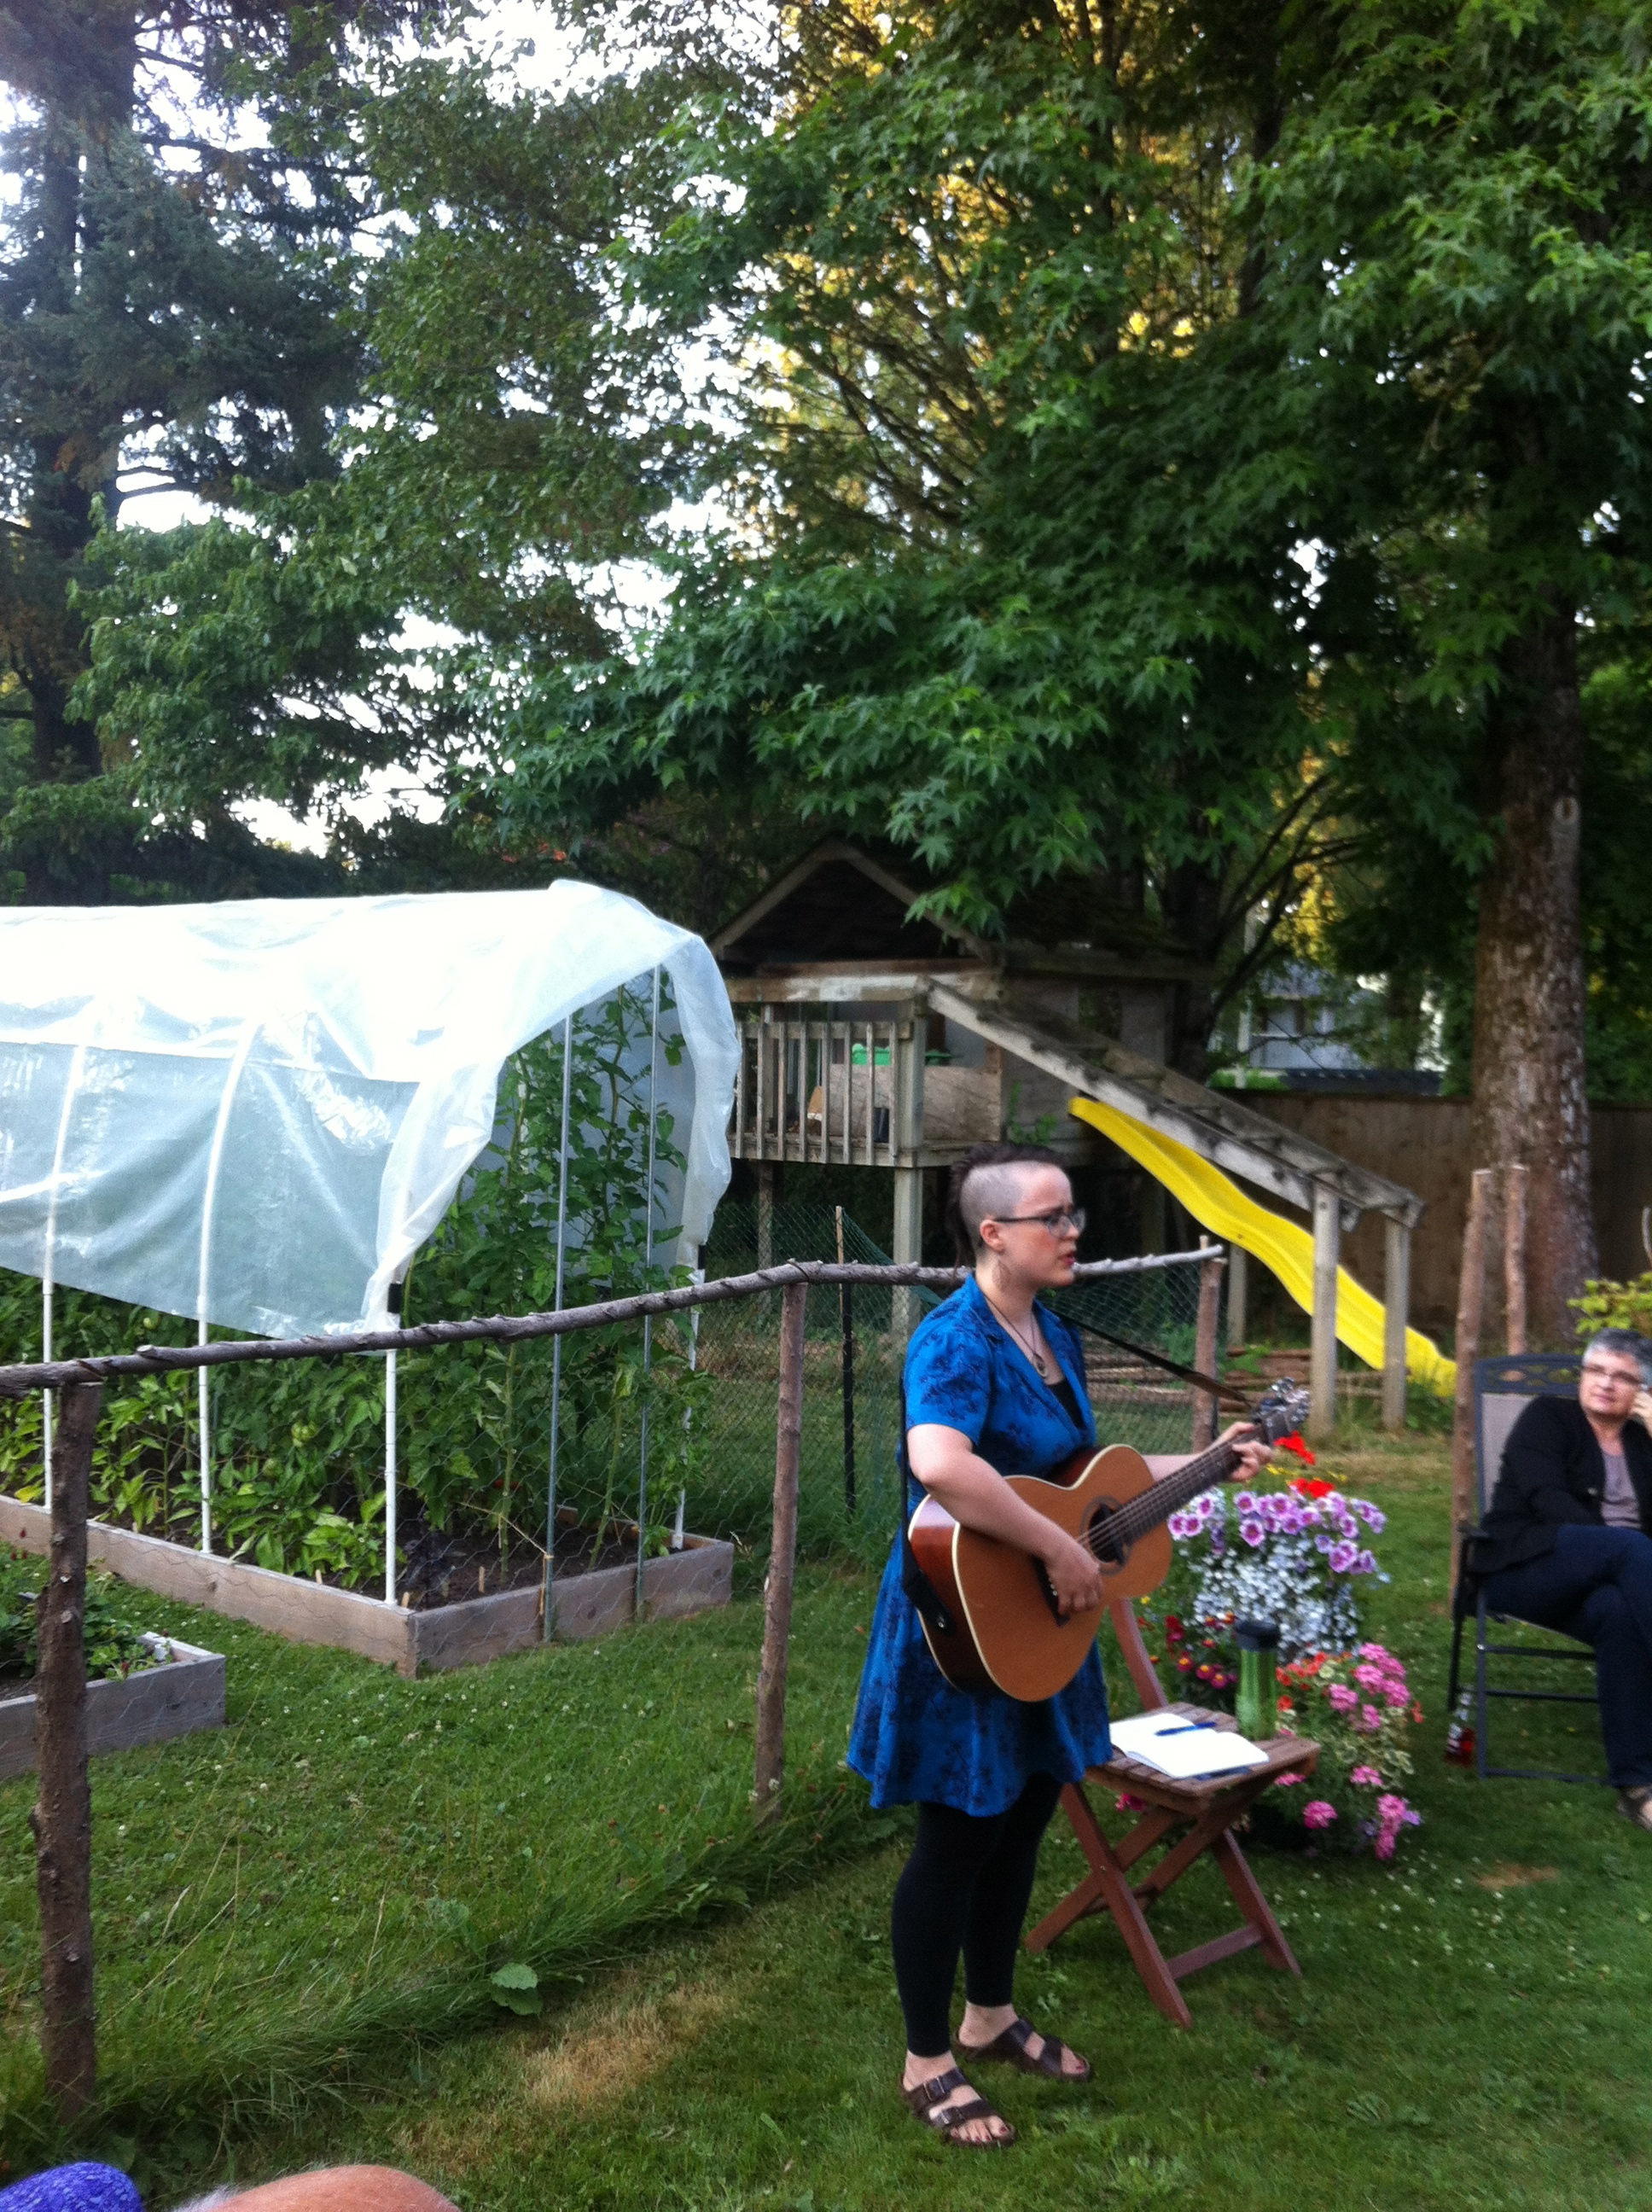 Garden party! What fun to sing in a garden!!!    Thanks to the kind and awesome hosts!  - Abbotsford, BC